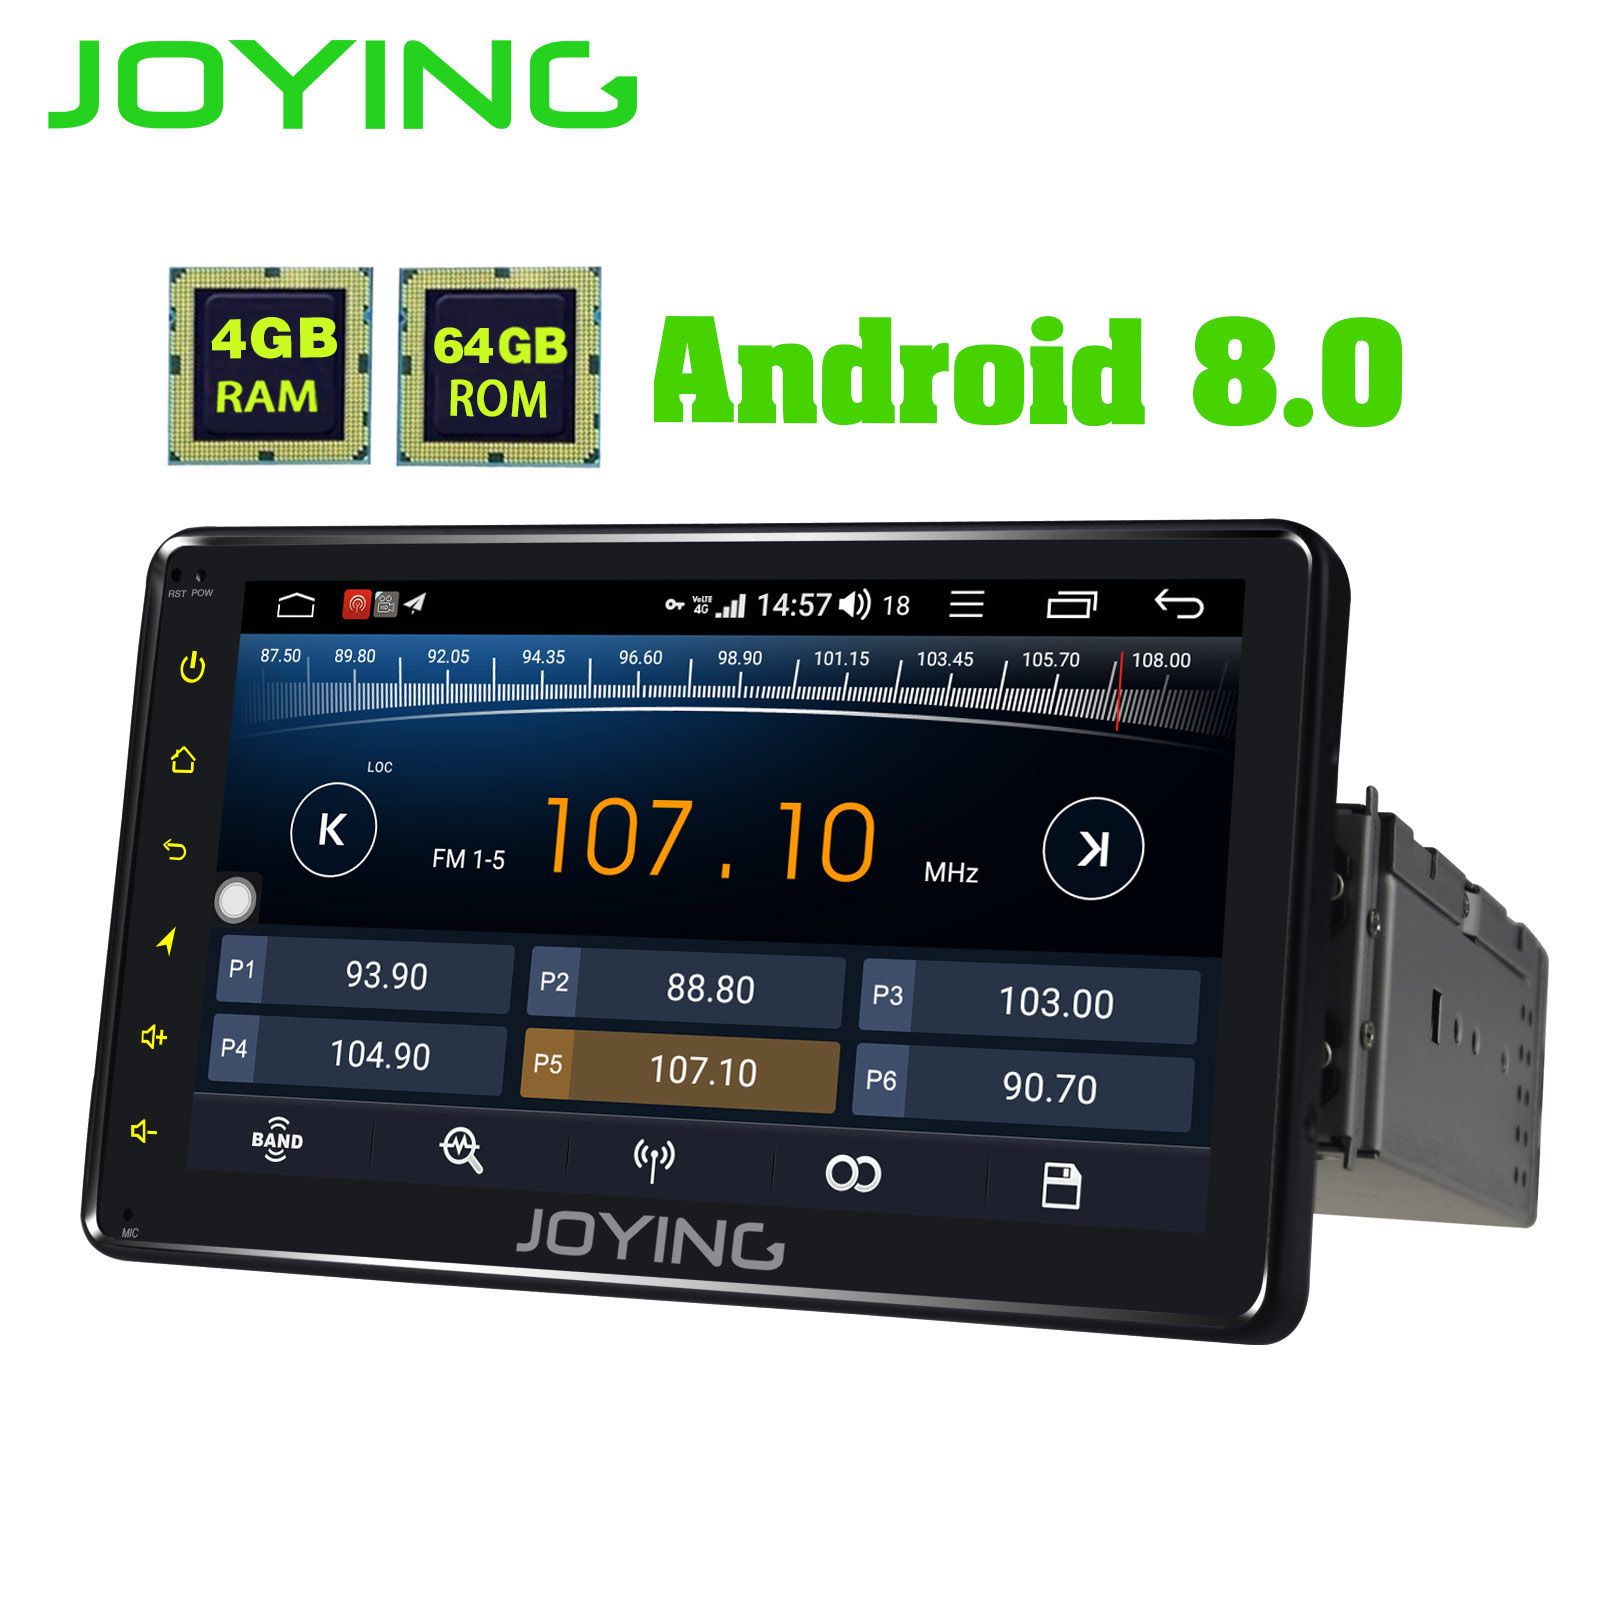 JOYING 4GB RAM 64GB ROM 1 Din 7 Inch Android 8.1 Car Radio Stereo GPS Audio Octa Core HD Head Unit With Carplay And Android Auto